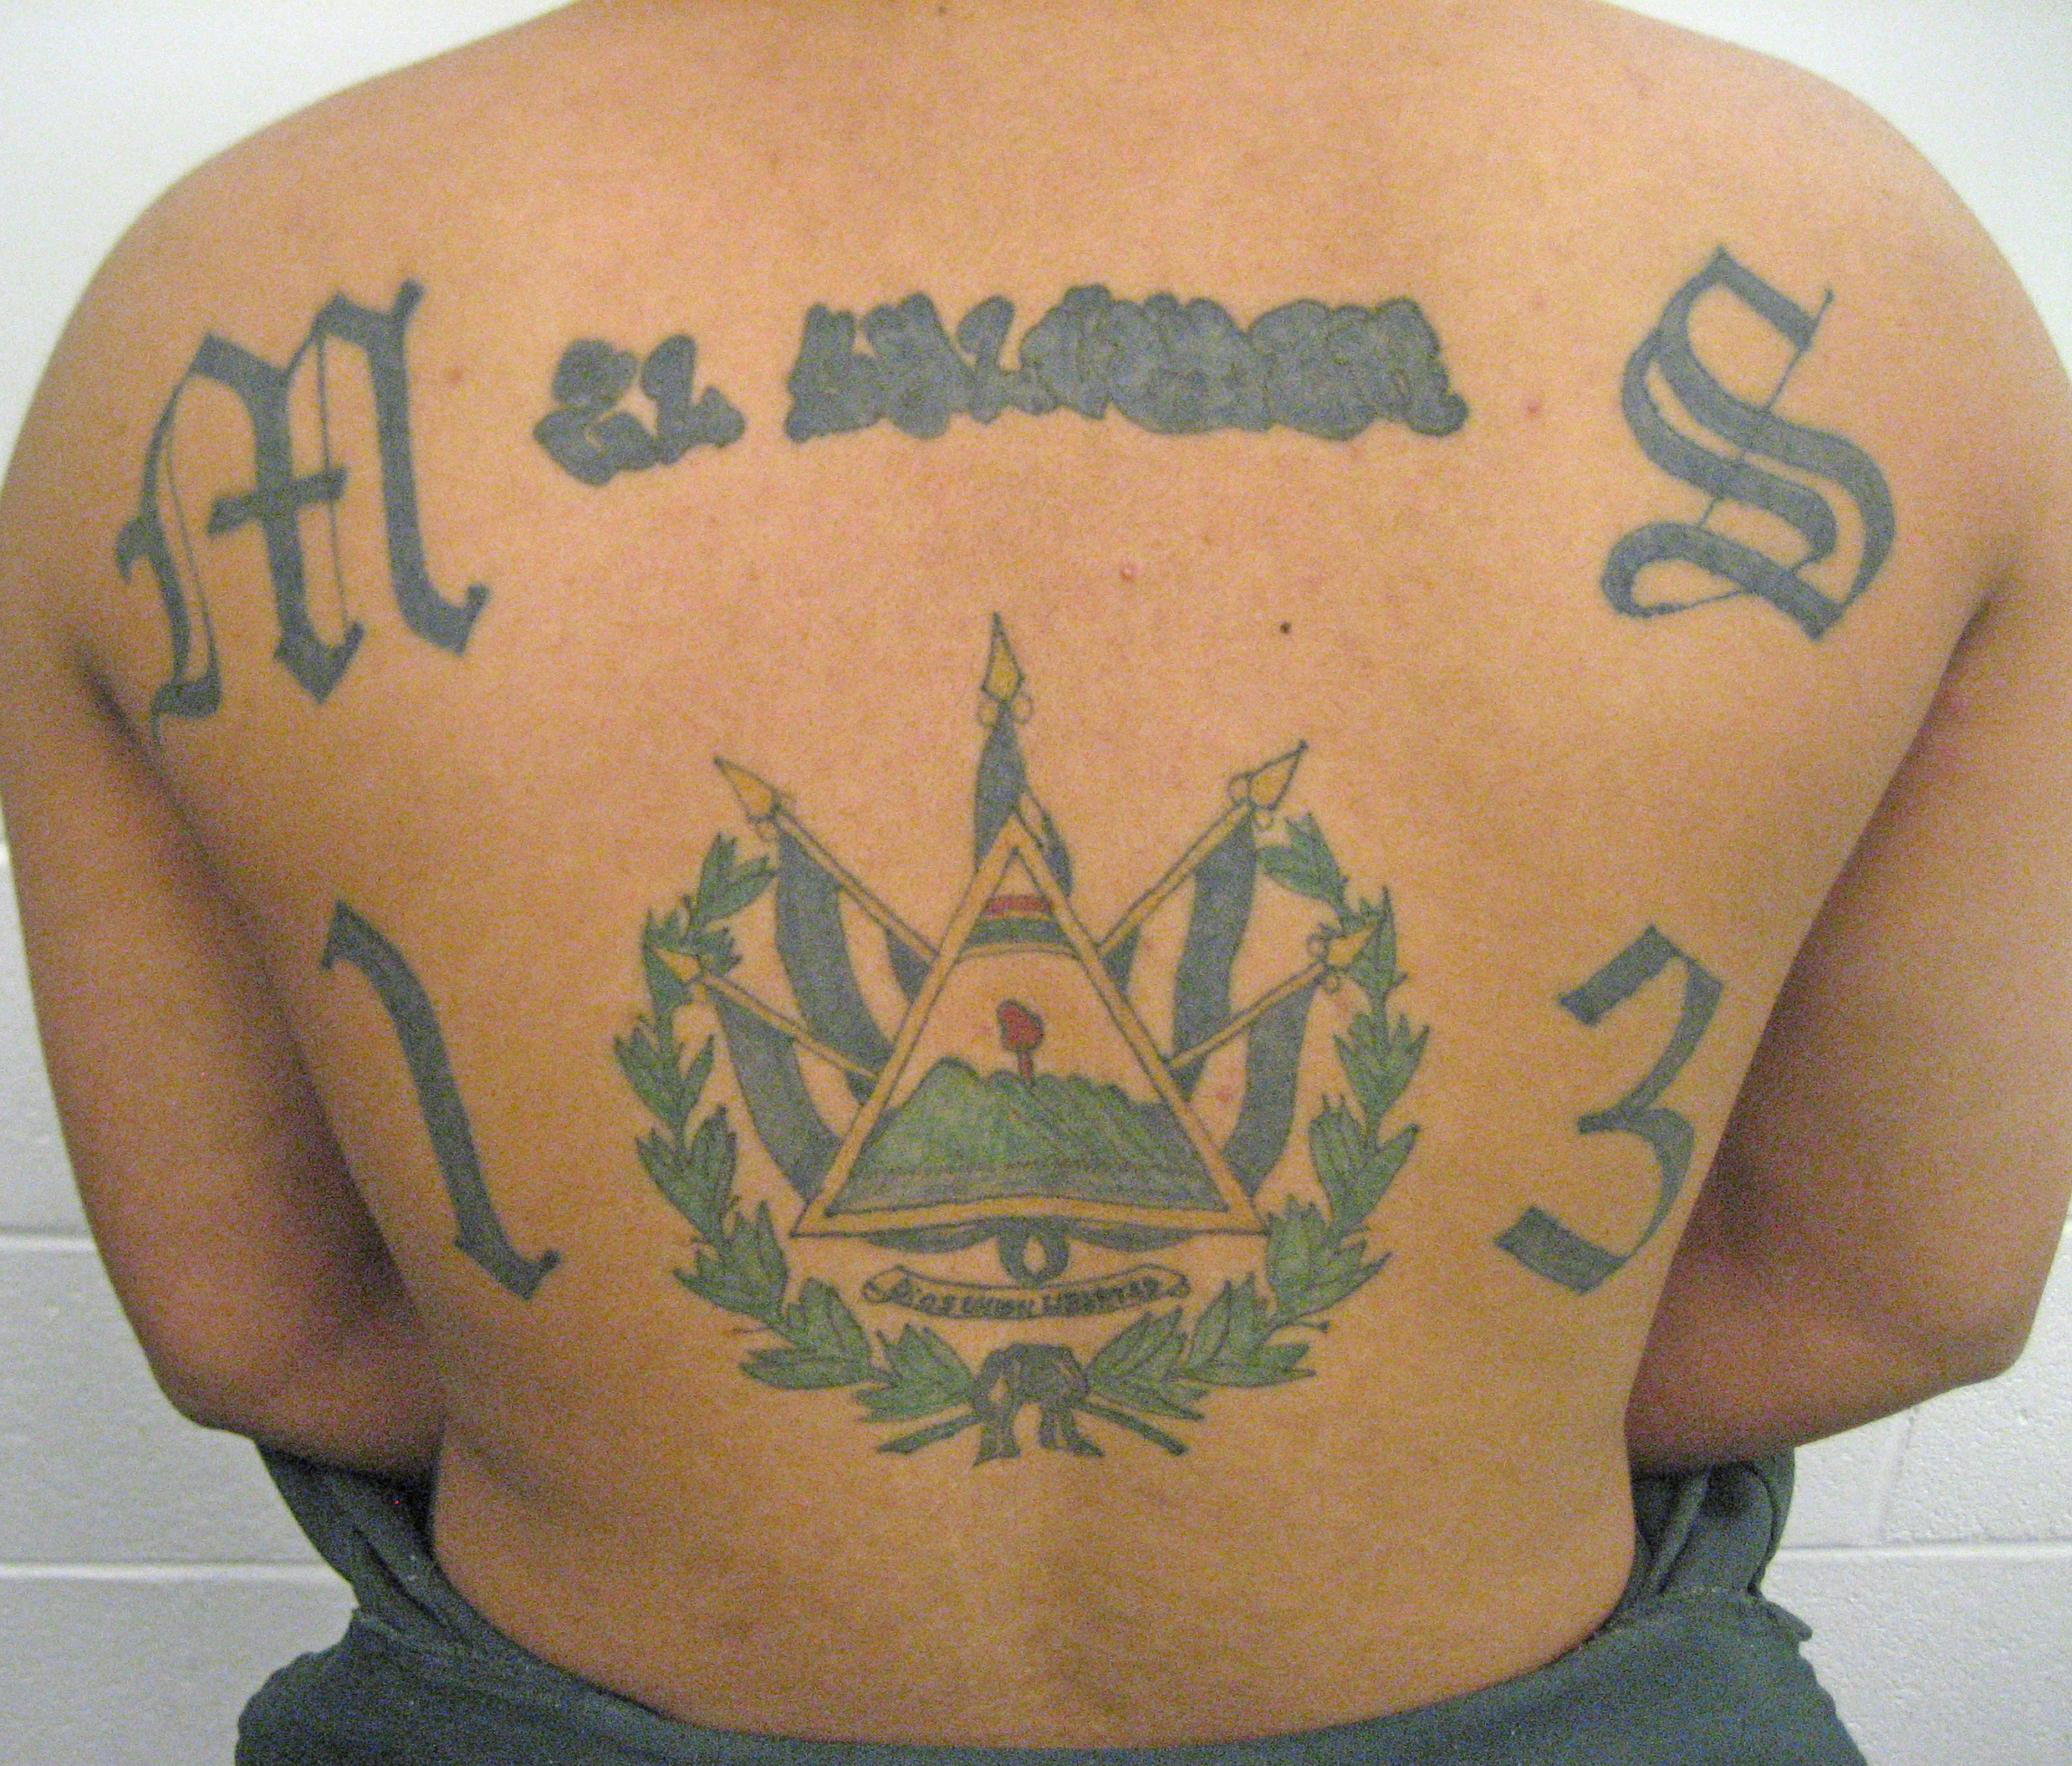 MS 13 tattoo